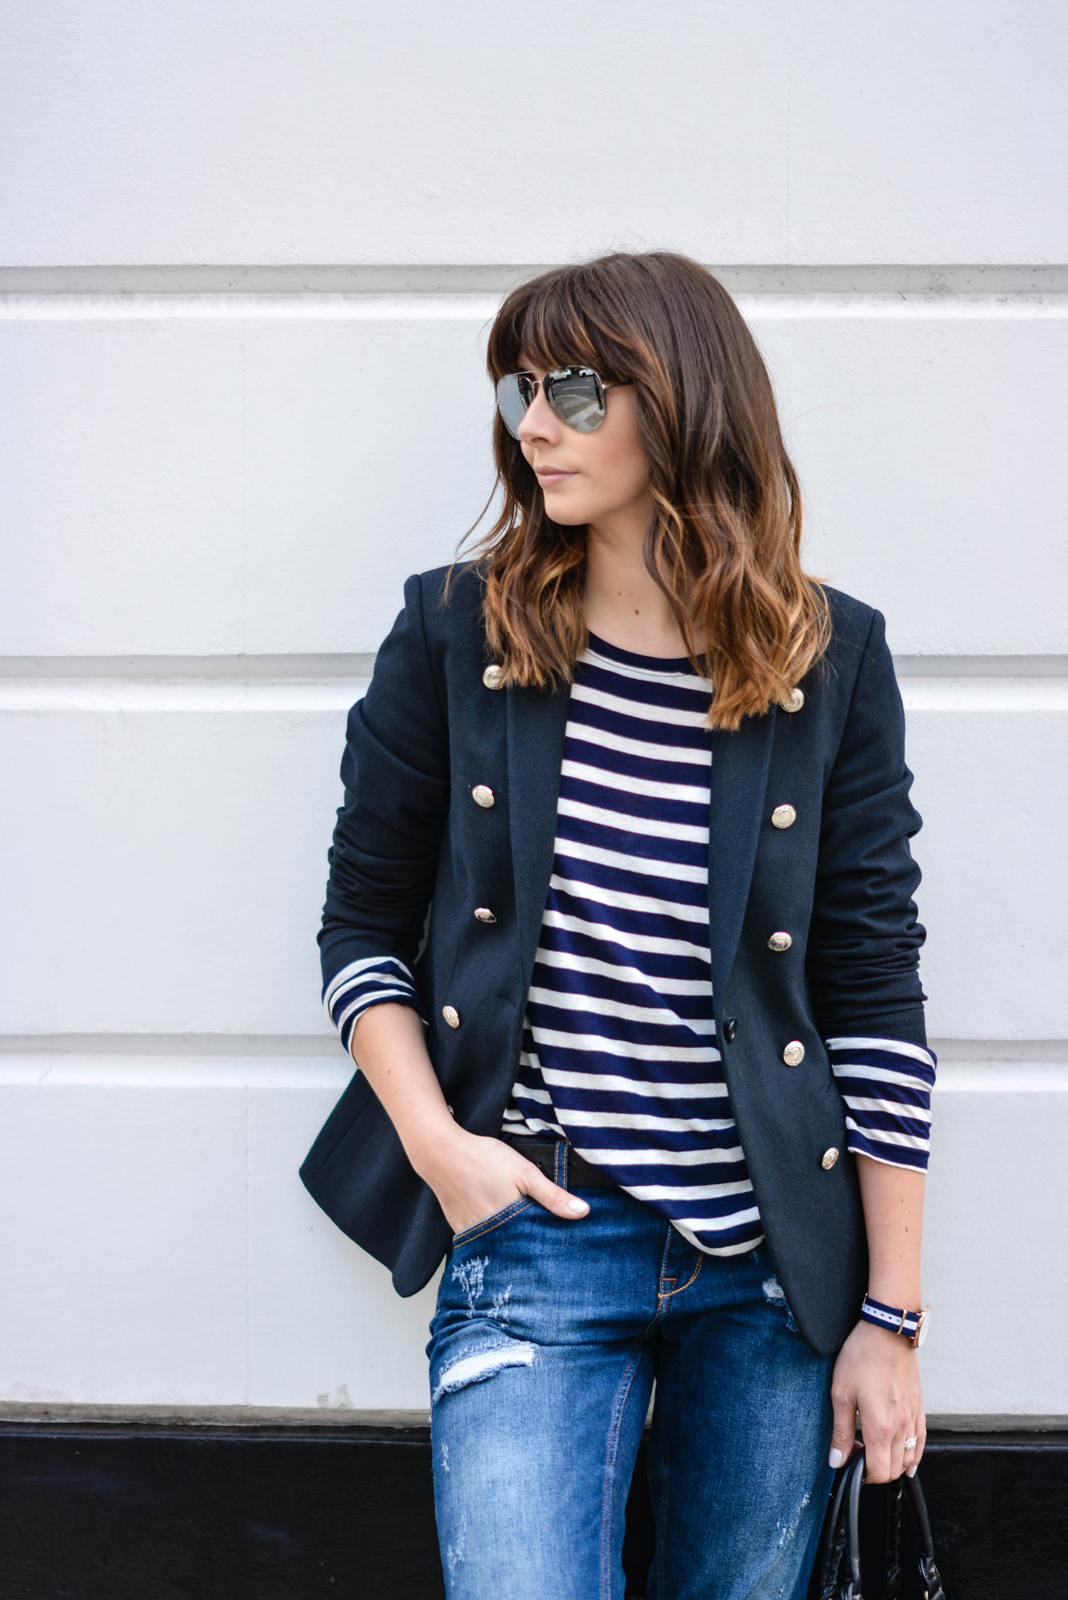 EJSTYLE Emma Hill Daniel Wellington Glasgow watch breton stripe top tshirt navy blazer Ripped boyfriend jeans mirror aviator sunglasses street style c12a7